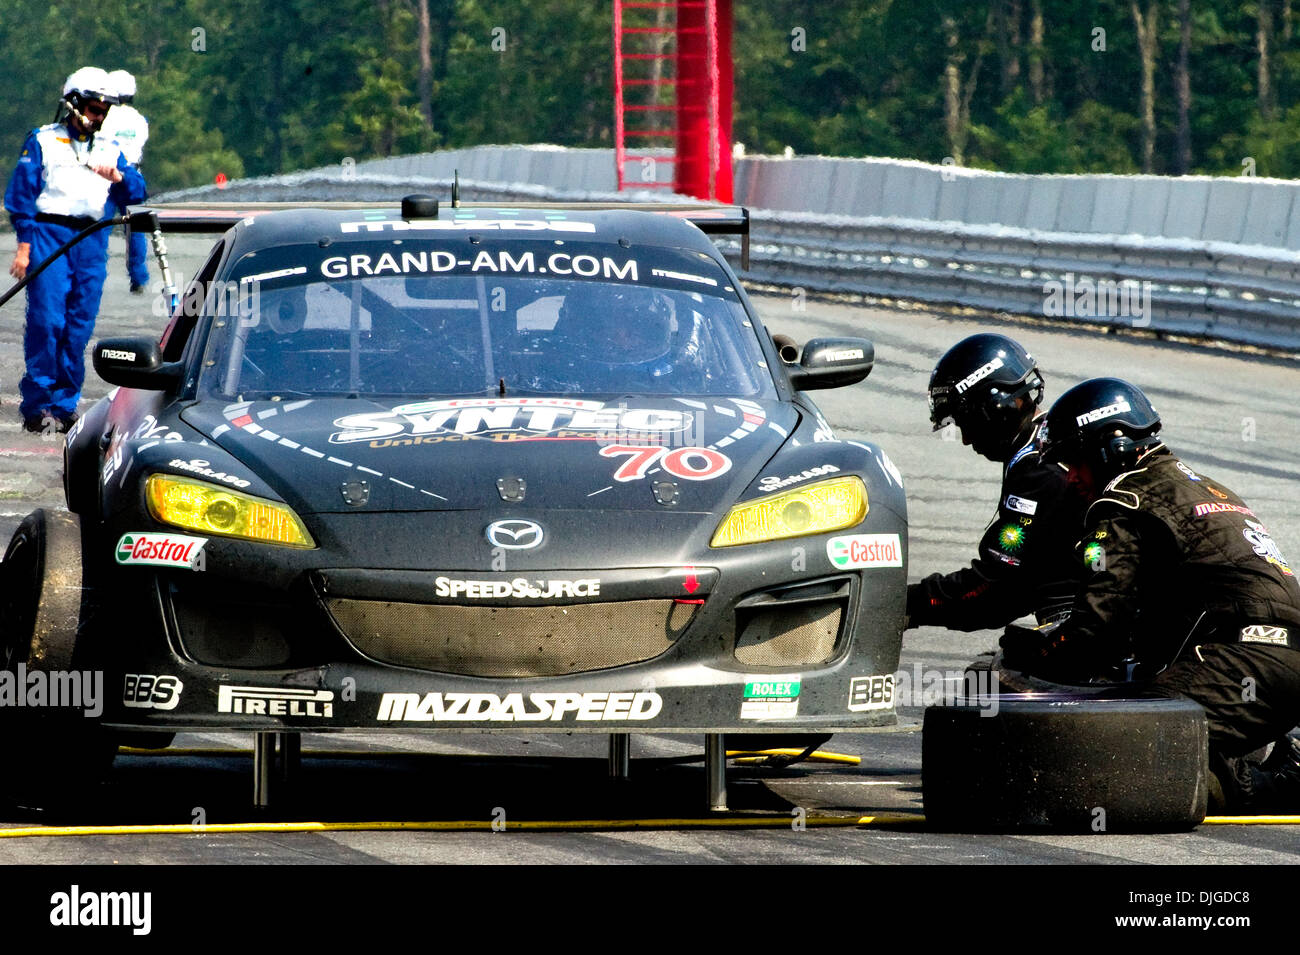 Stock photo the 70 speed source grand touring gt car during a pit stop during the njmp 250 presented by crown royal at the new jersey motorsports